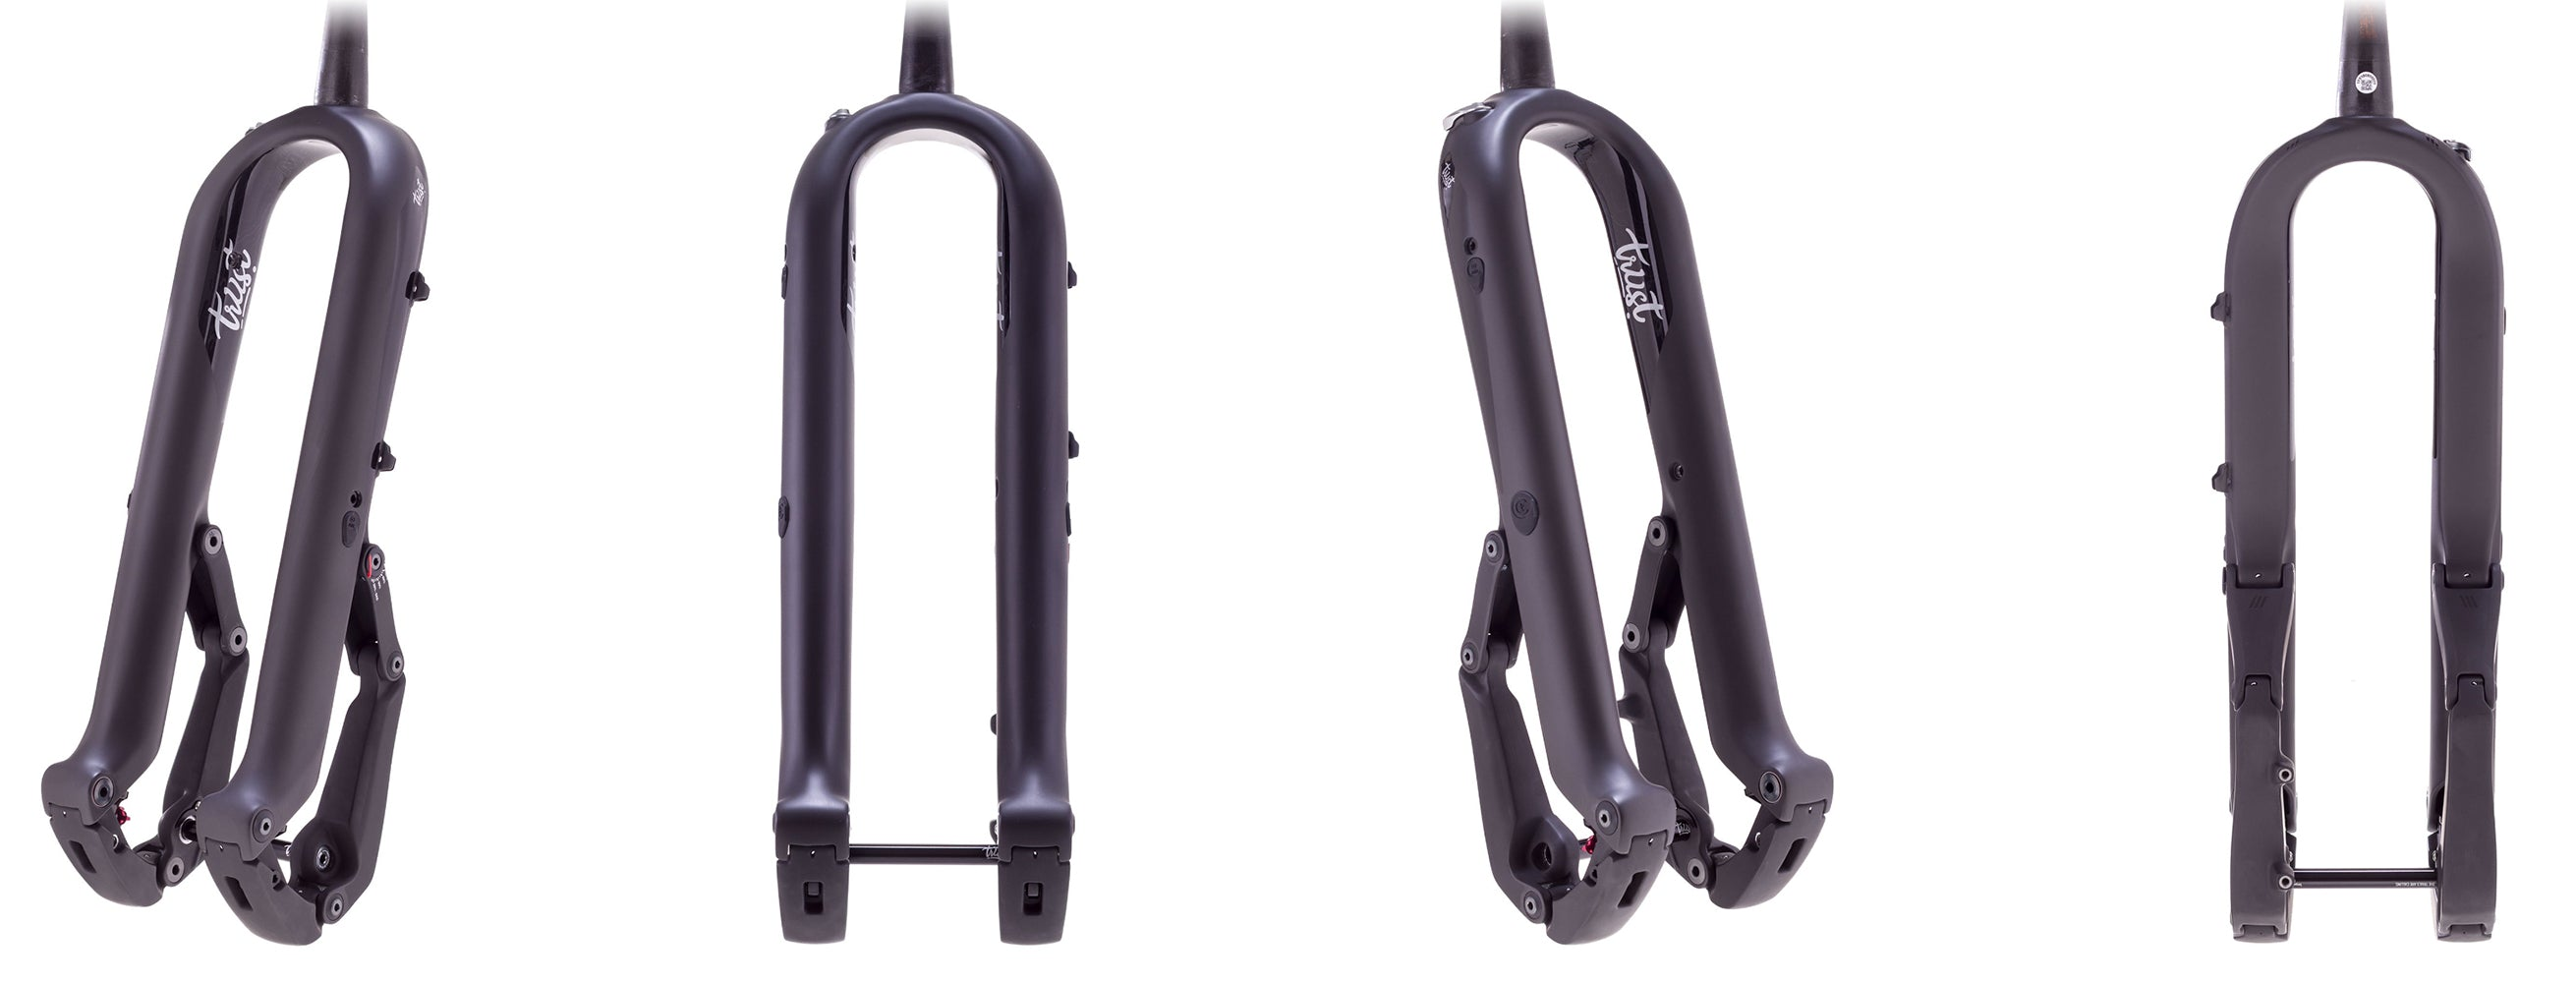 Trust Performance Message Suspension Fork - Contender Bicycles